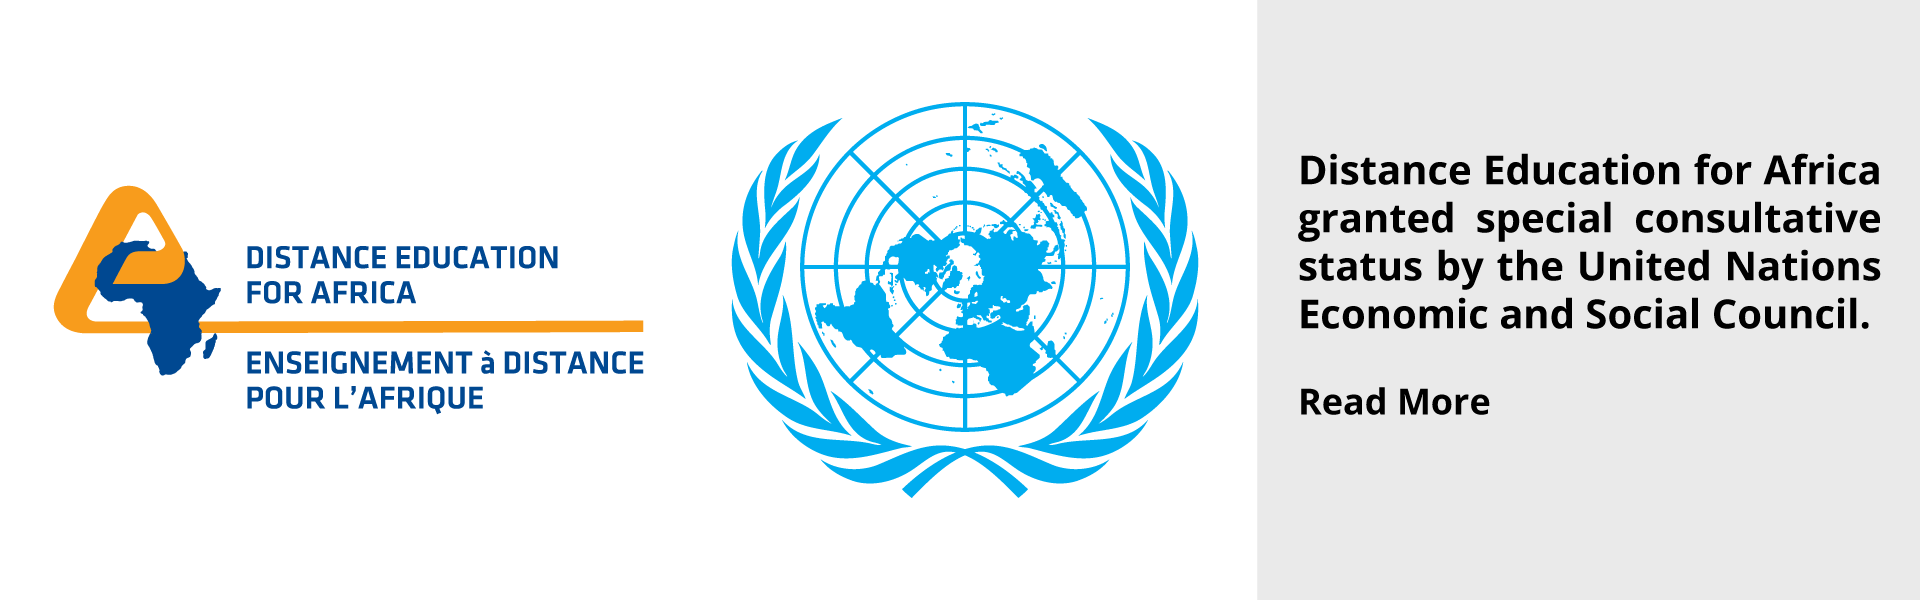 DEAfrica-United-Nations-Economic-and-Social-Council-partnership